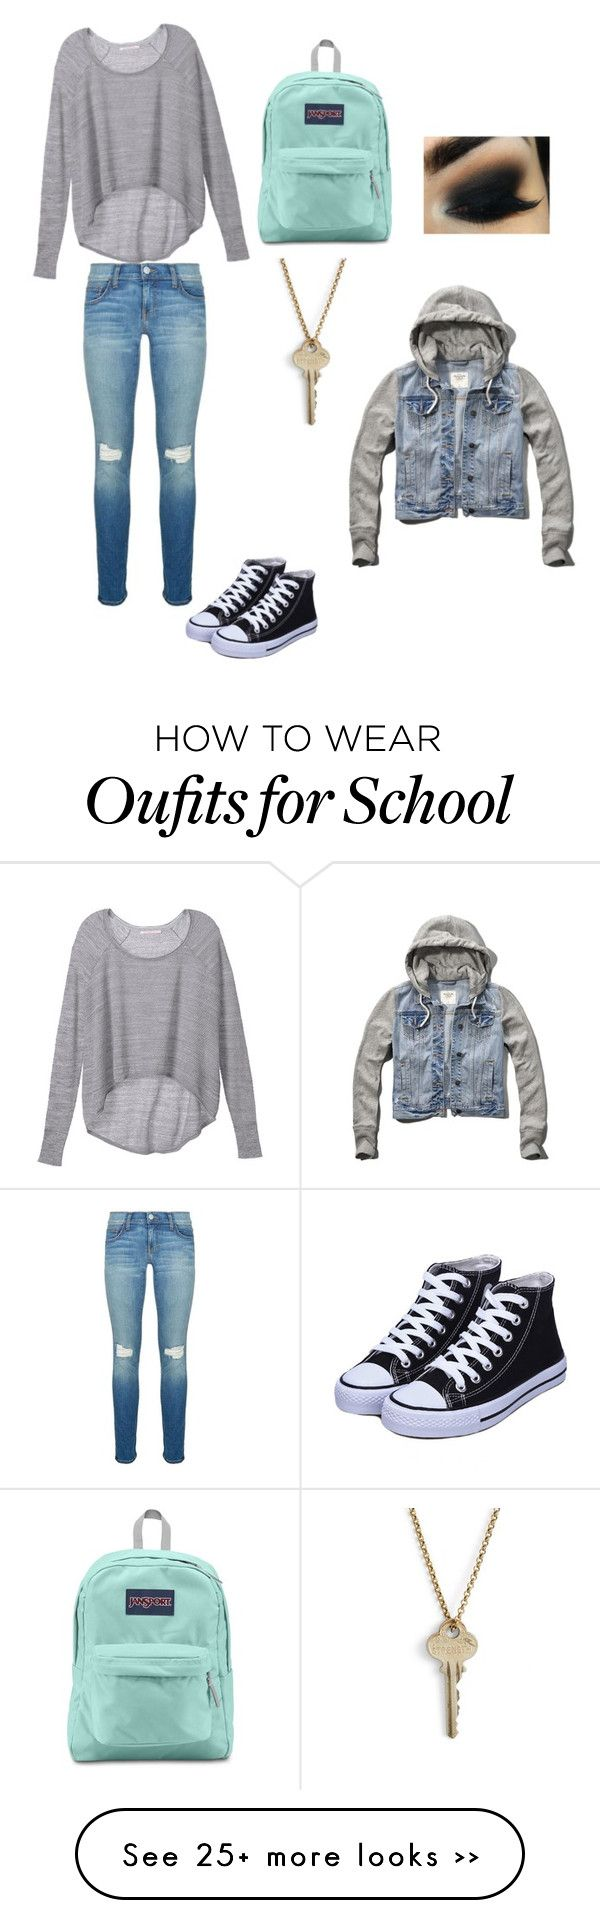 school by ali-the-gymnast on Polyvore featuring Rebecca Minkoff, Victorias Secret, JanSport, The Giving Keys and Abercrombie  Fitch